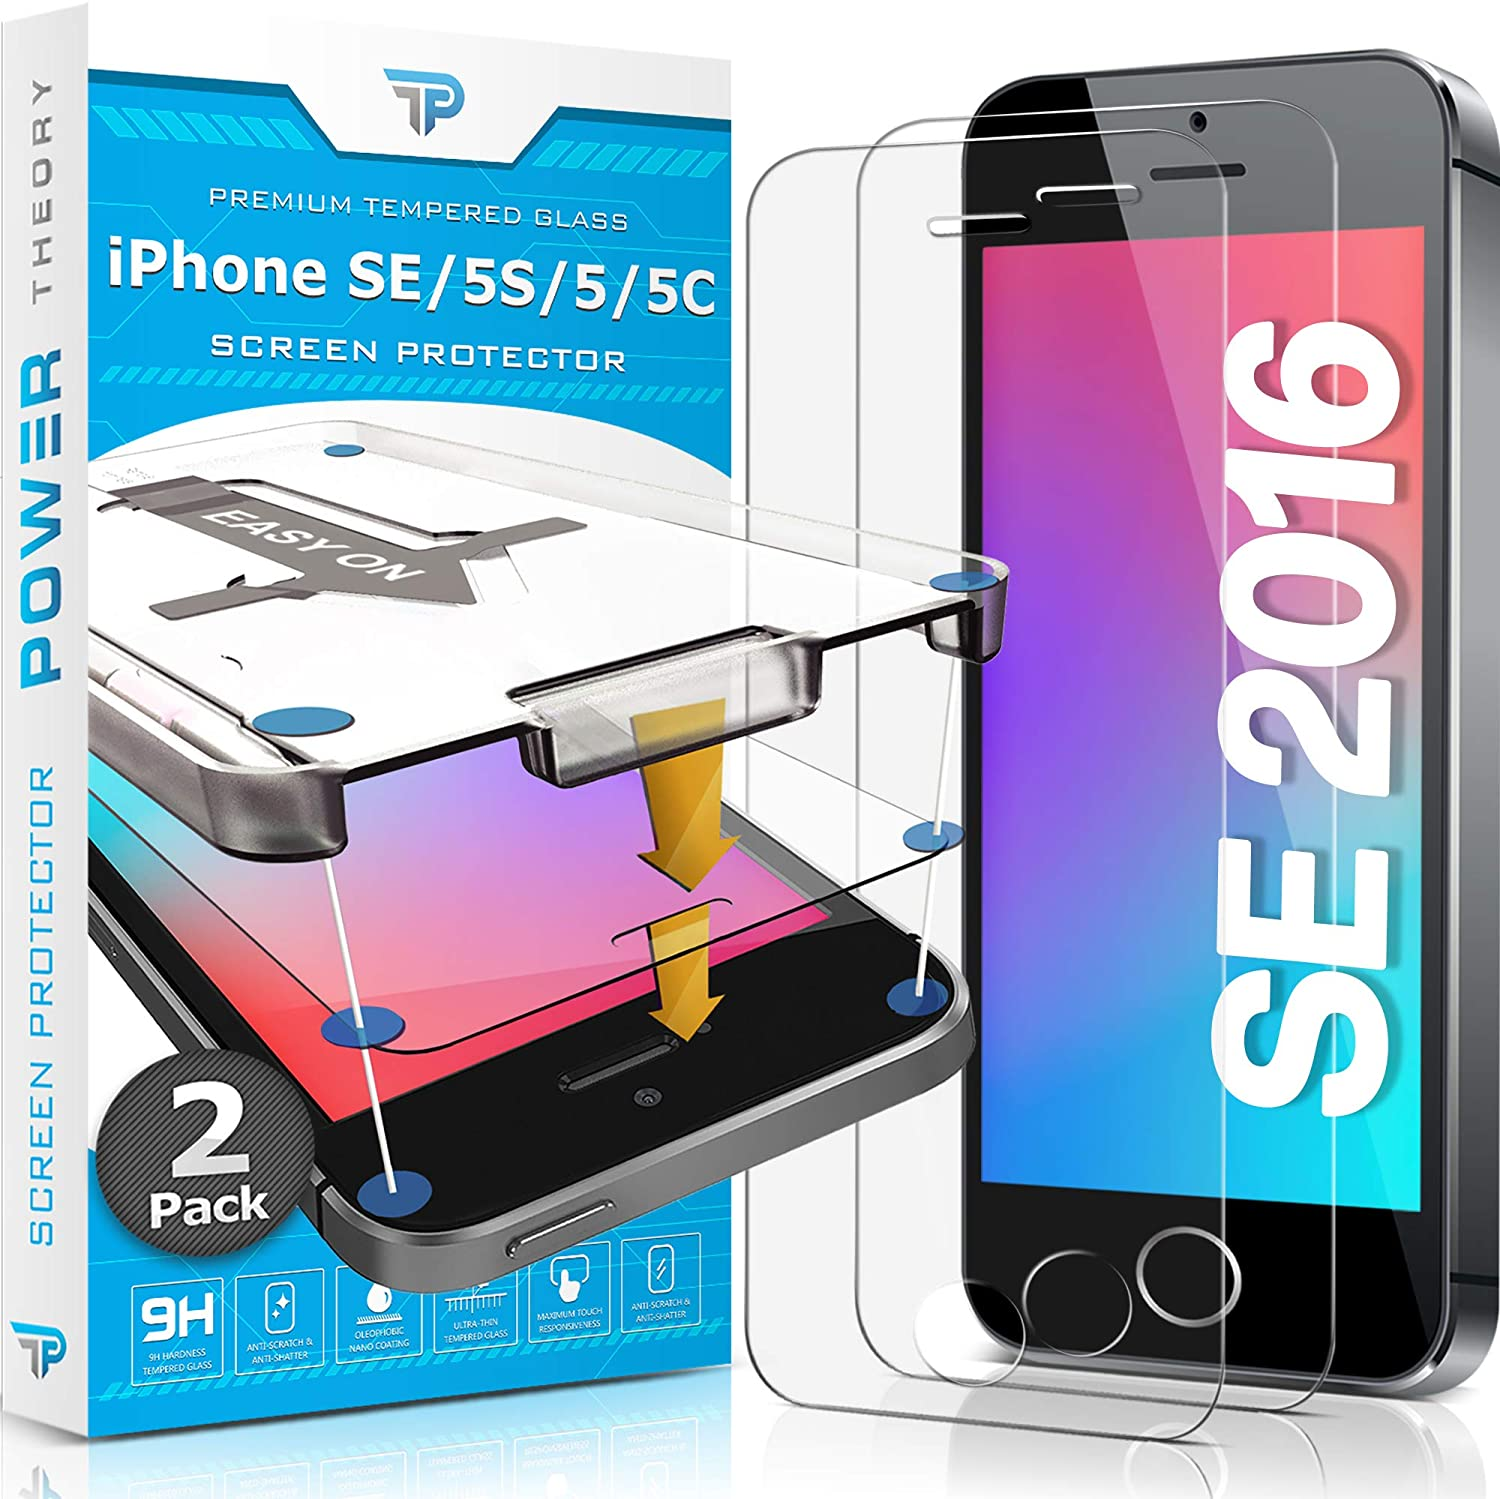 Power Theory iPhone SE/5S/5 Glass Screen Protector [2-Pack]